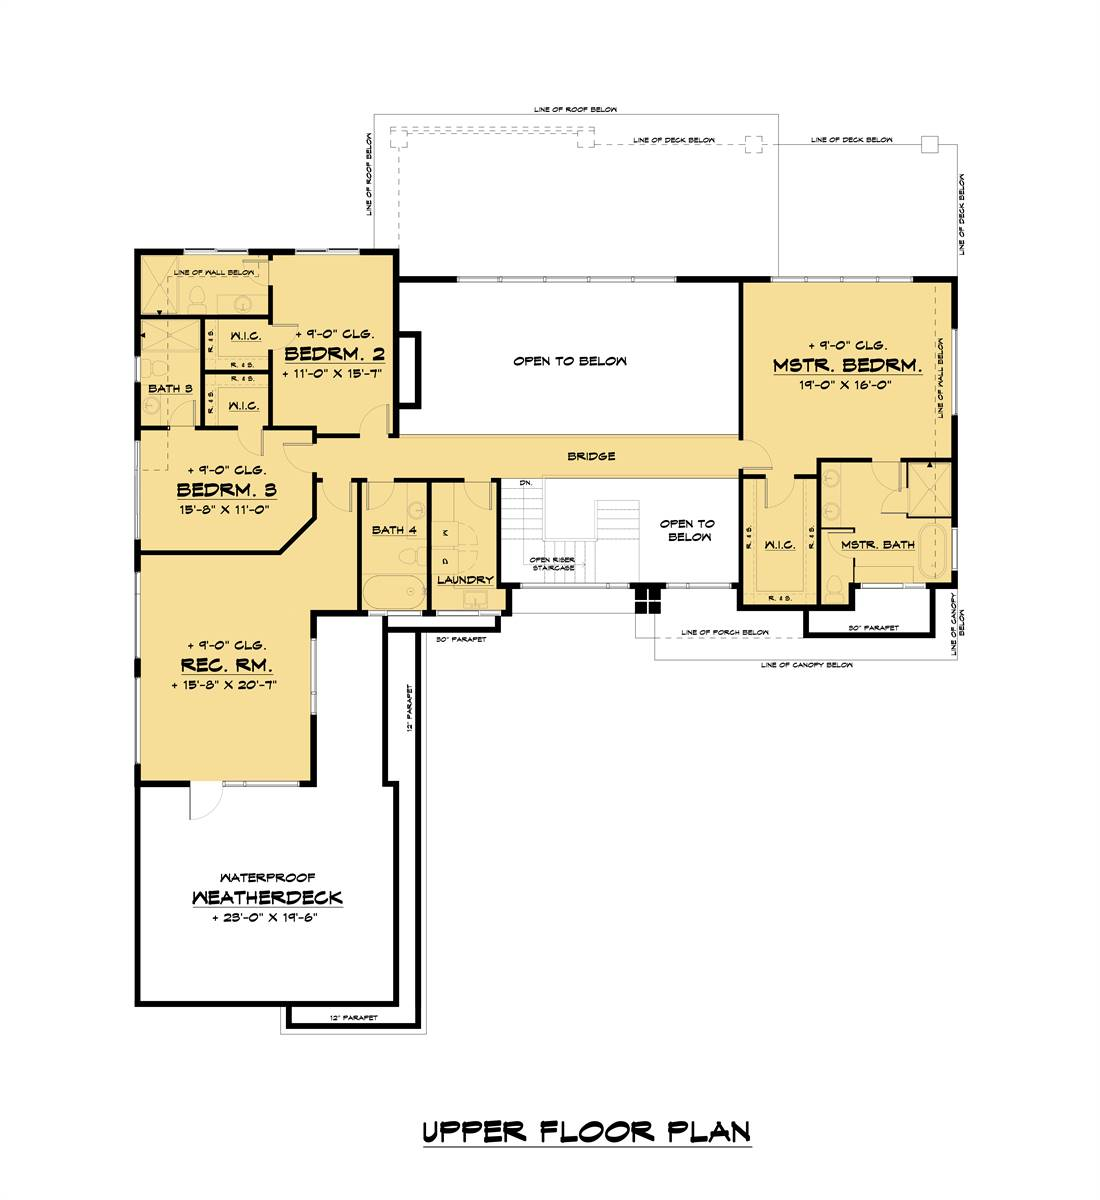 Upper Floor Plan image of Featured House Plan: PBH - 7539